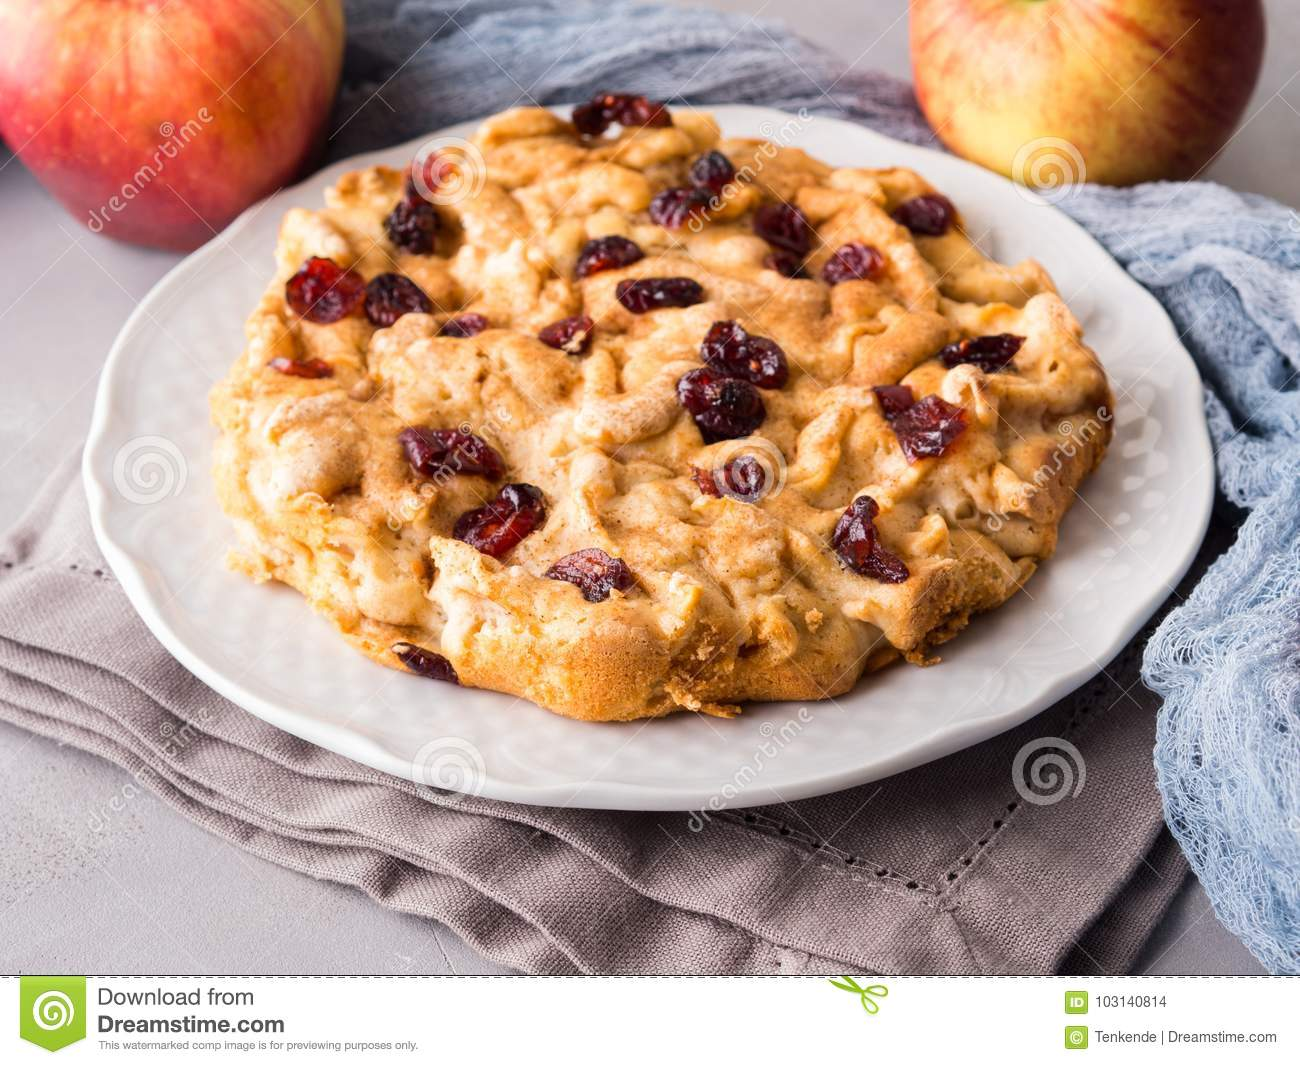 Apple and Dried Cranberry Pie photo